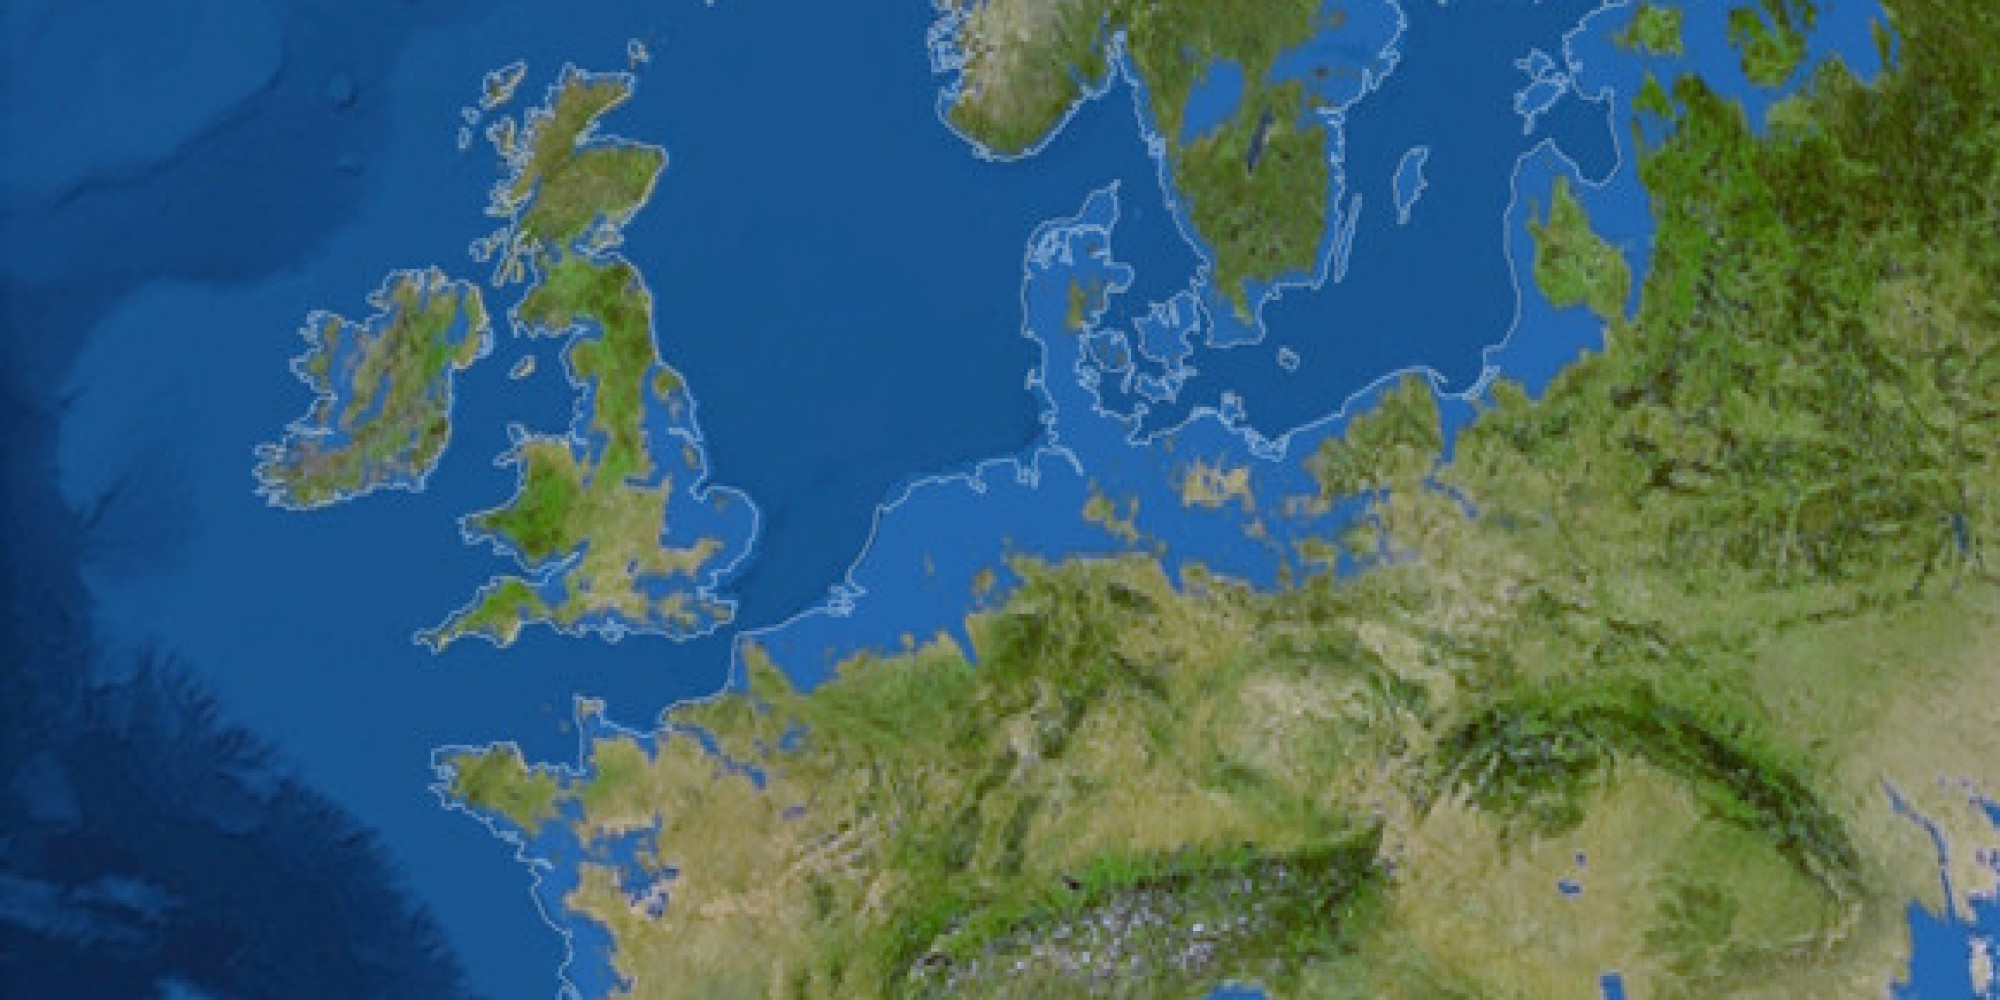 Rising Sea Levels Threaten London Europes Capitals PICTURES - Map of us after ice caps melt